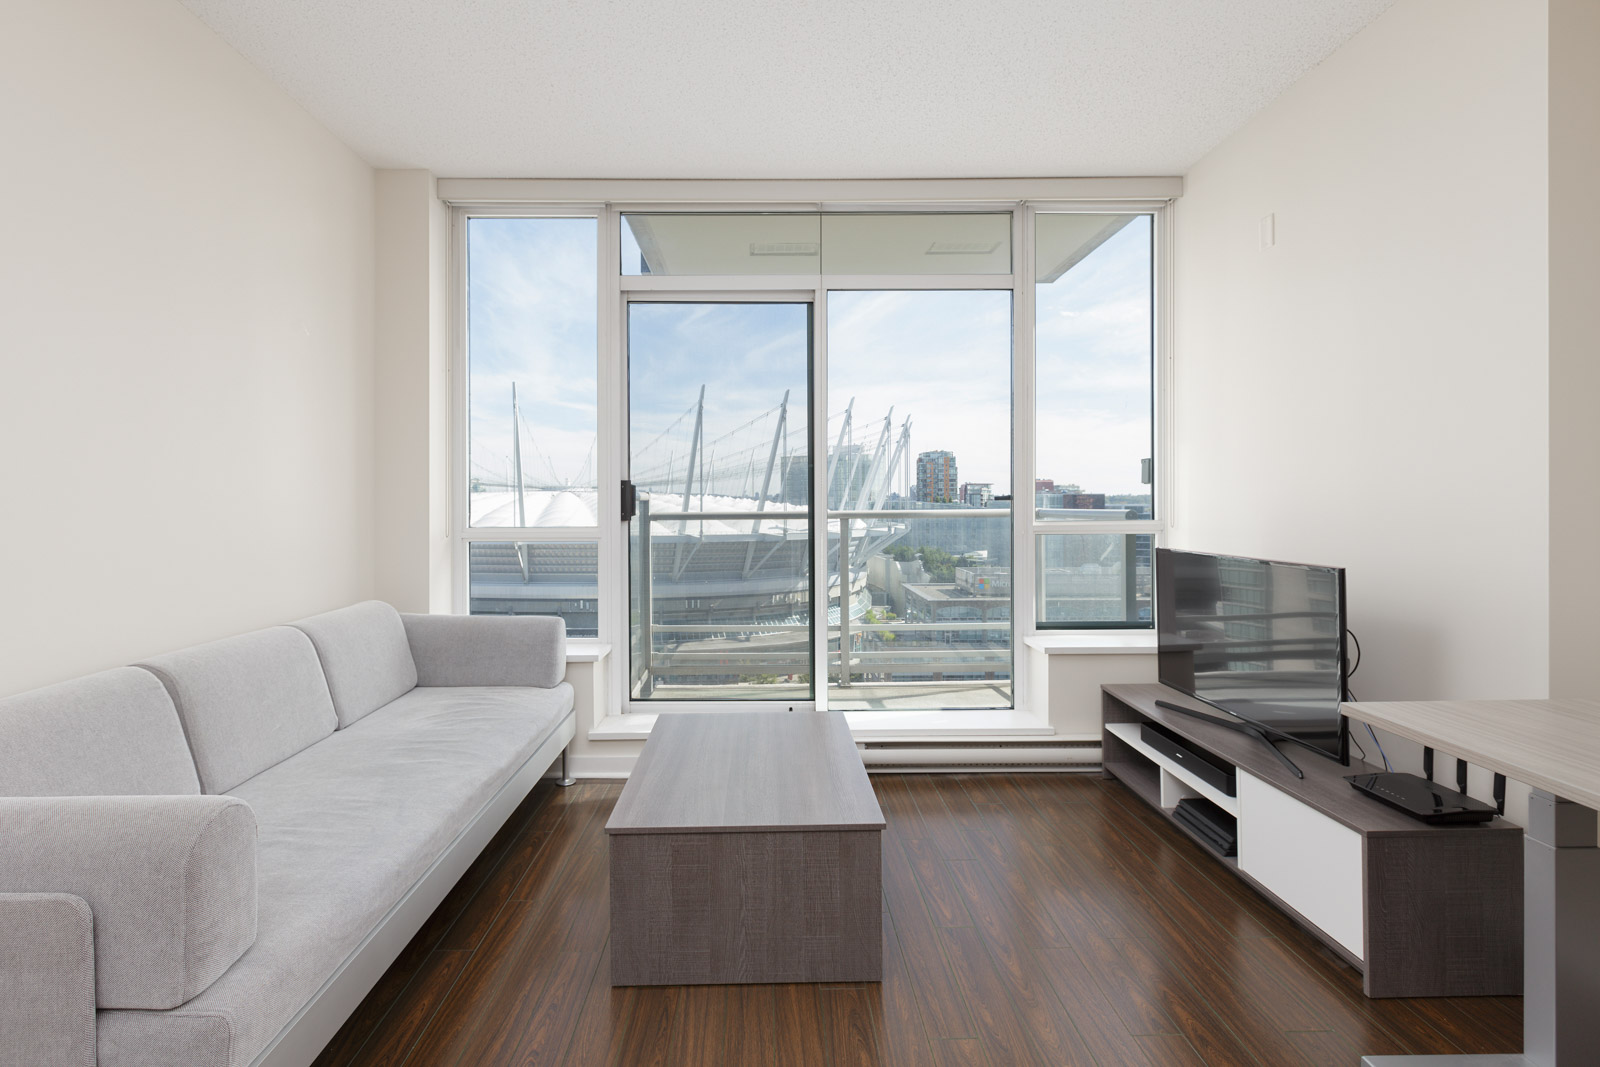 Living room inside upscale Yaletown condo with view of BC place in downtown Vancouver